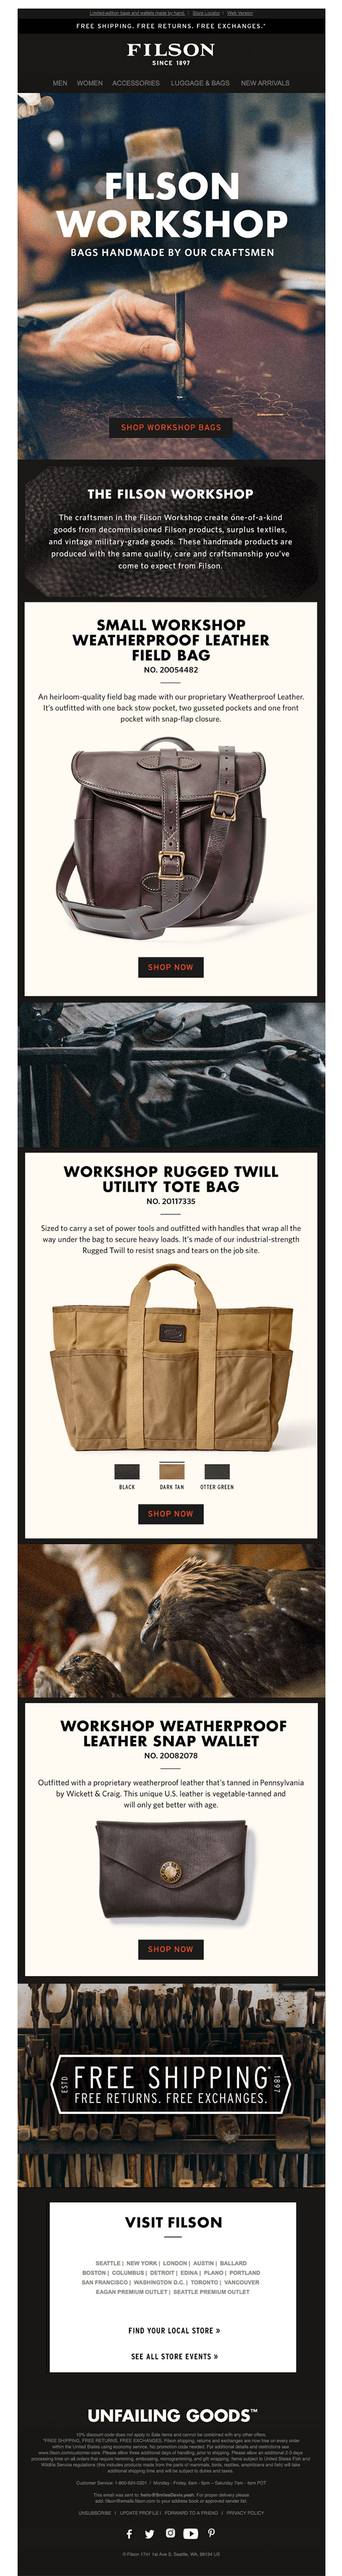 Filson makes you feel like you're in the workshop